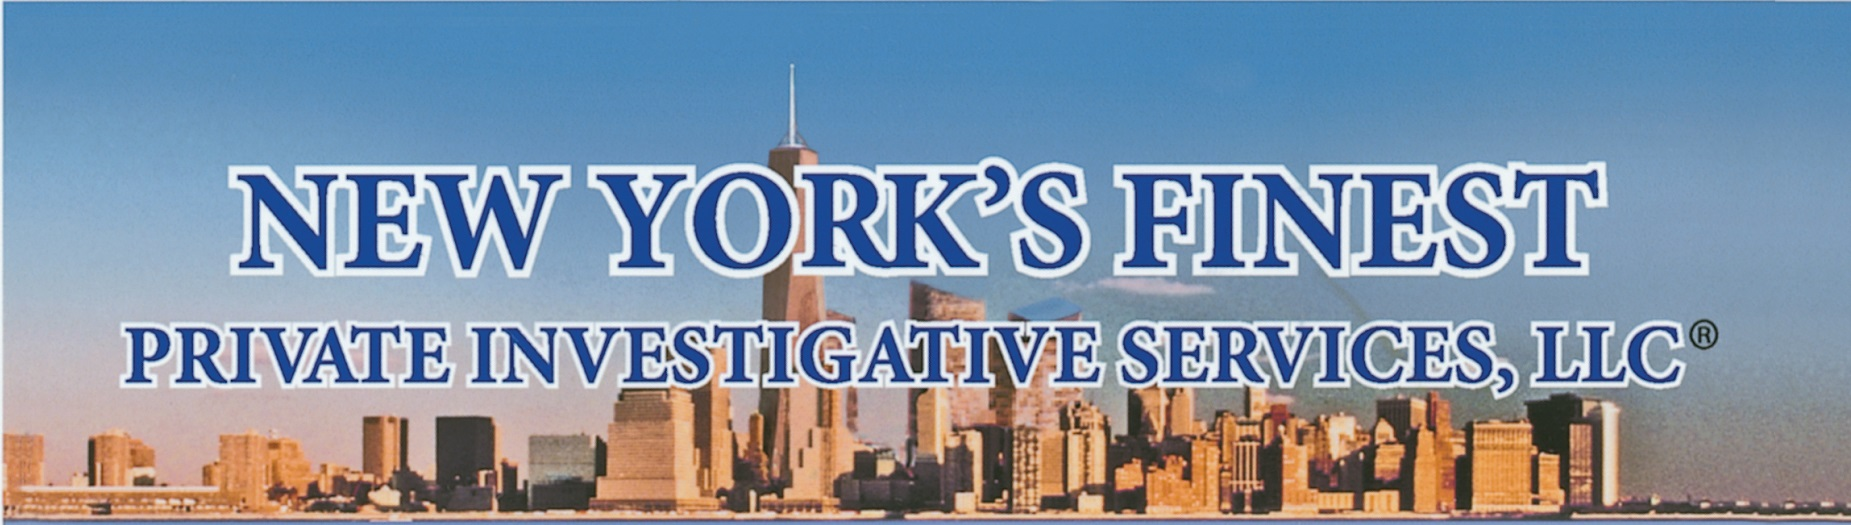 New York's Finest Private Investigators